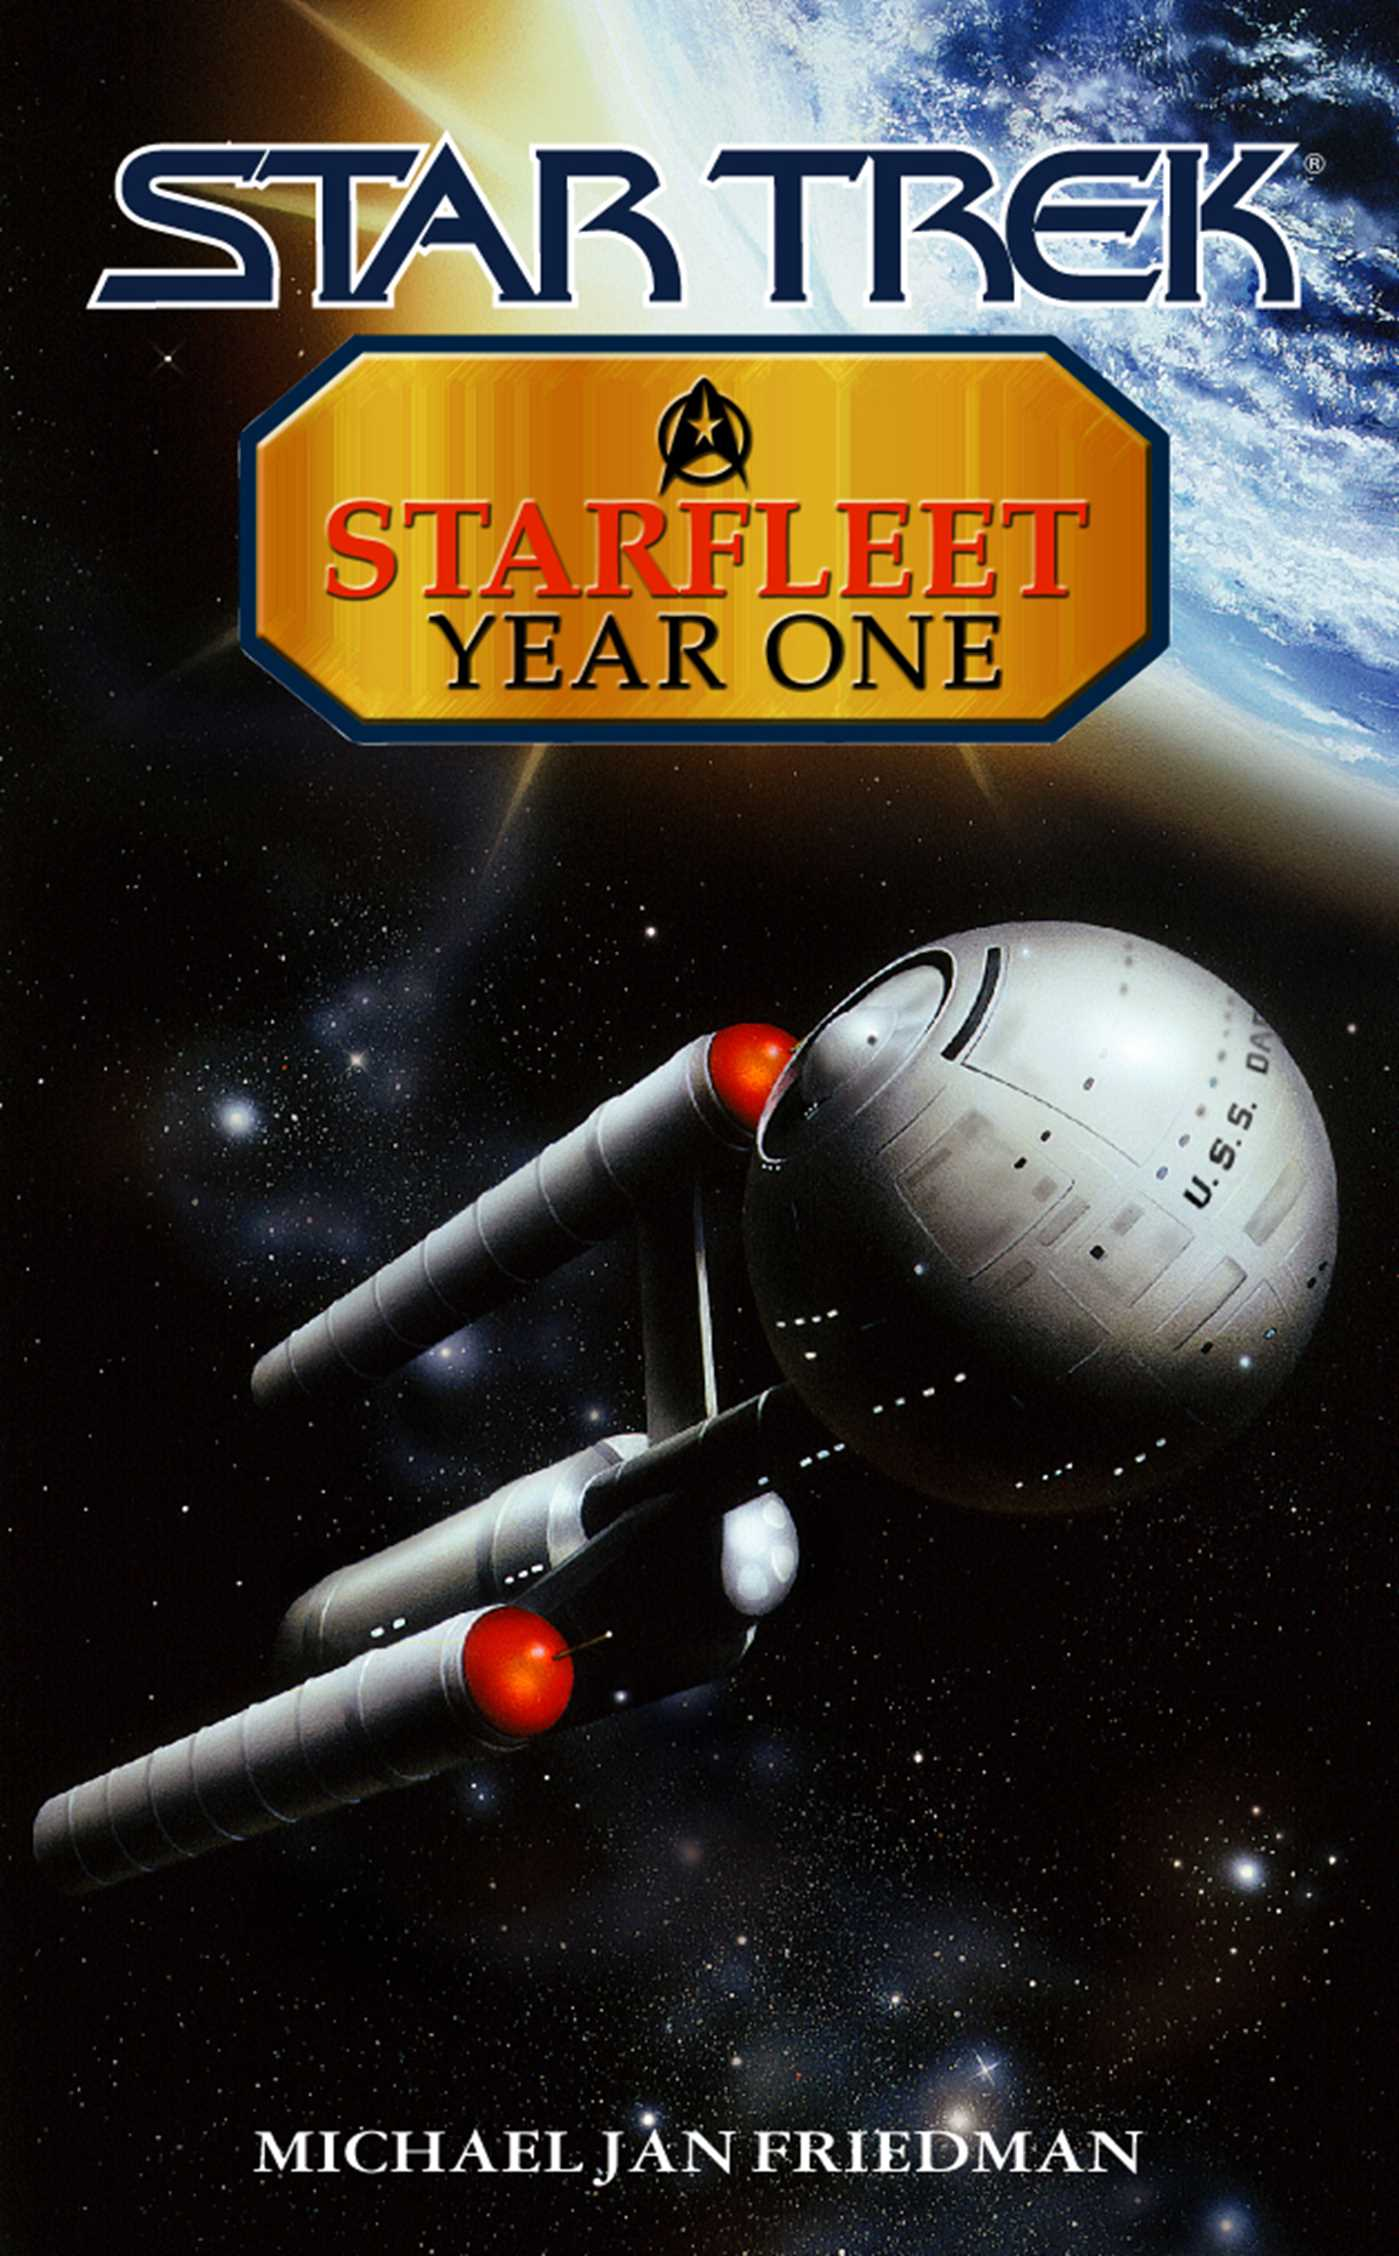 Starfleet year one 9780743437899 hr